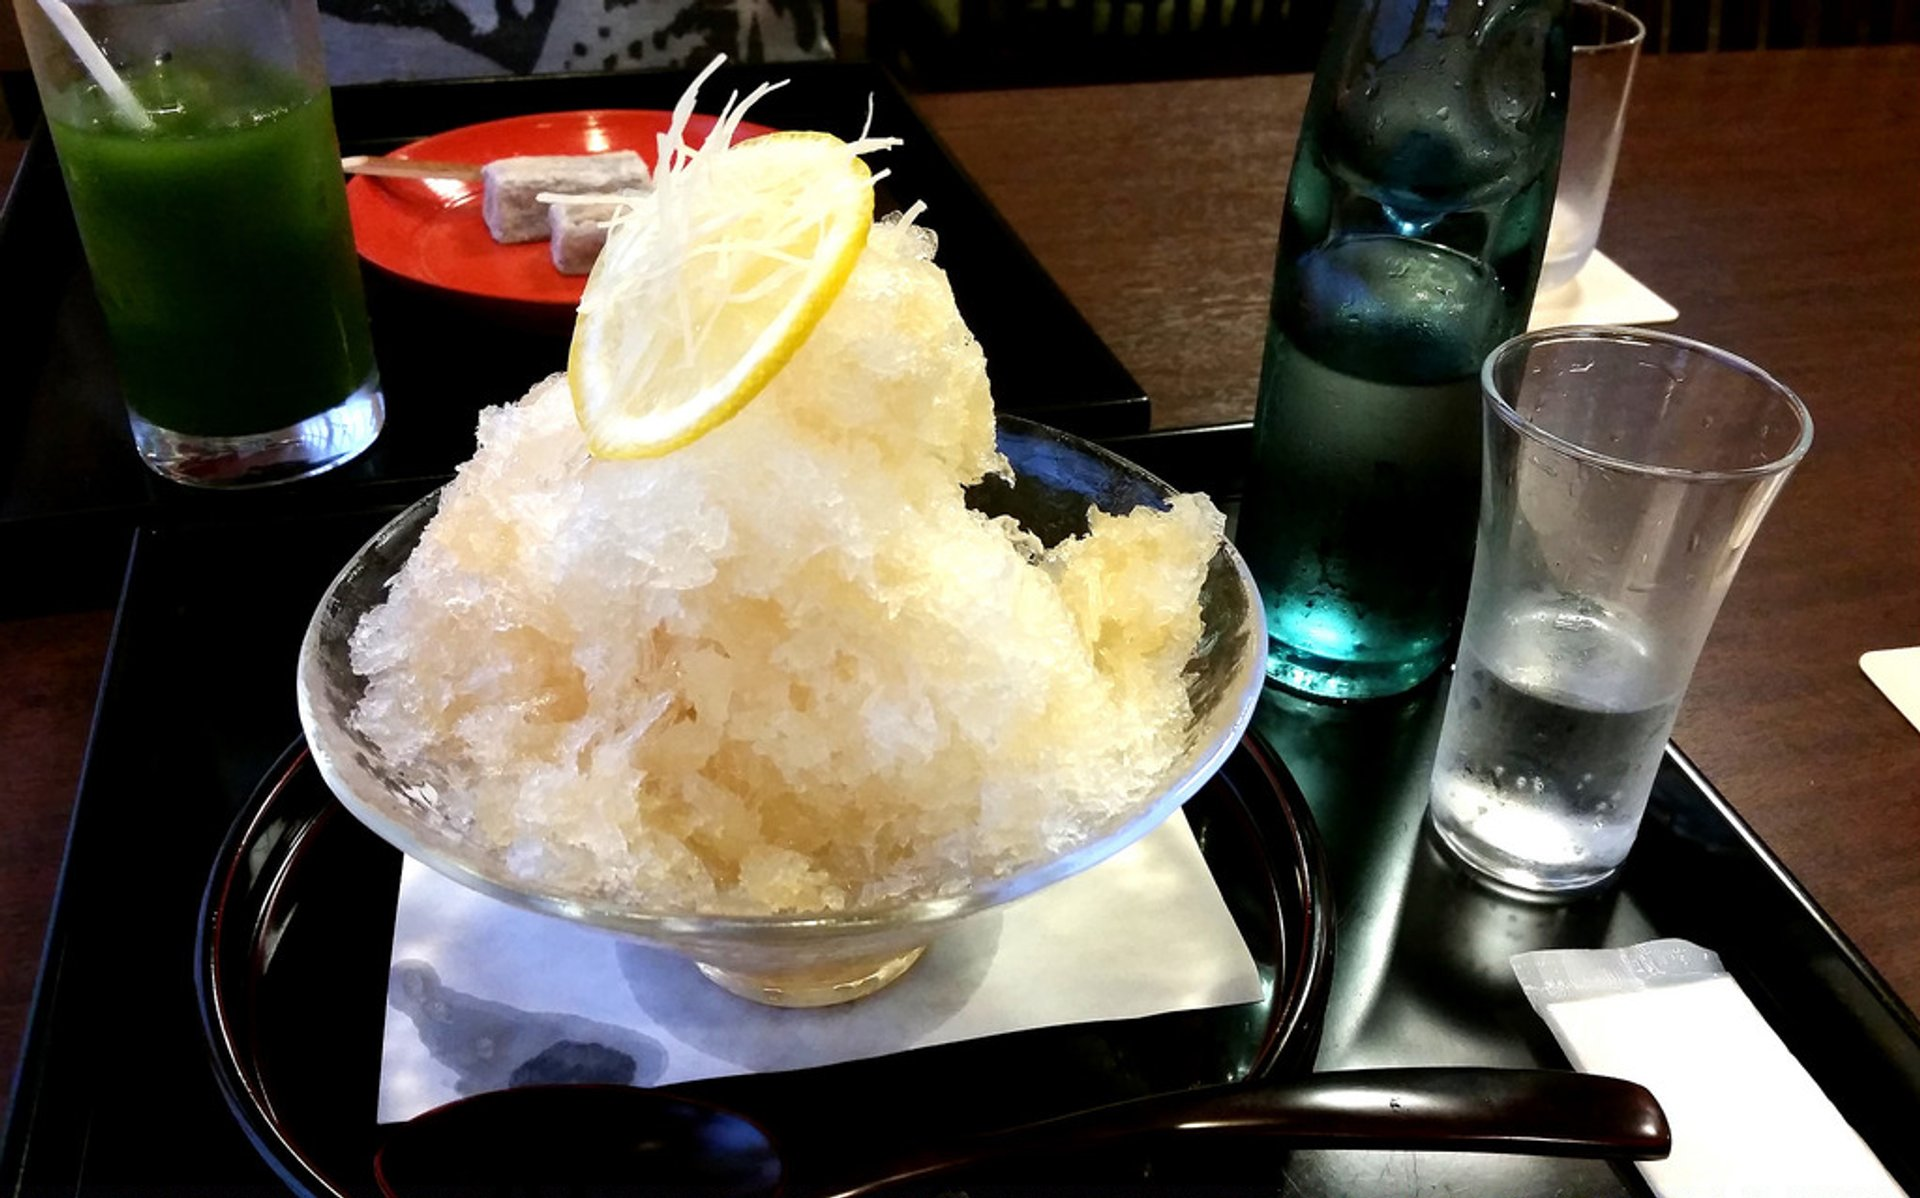 Best time for Kakigori or Shaved Ice in Japan 2020